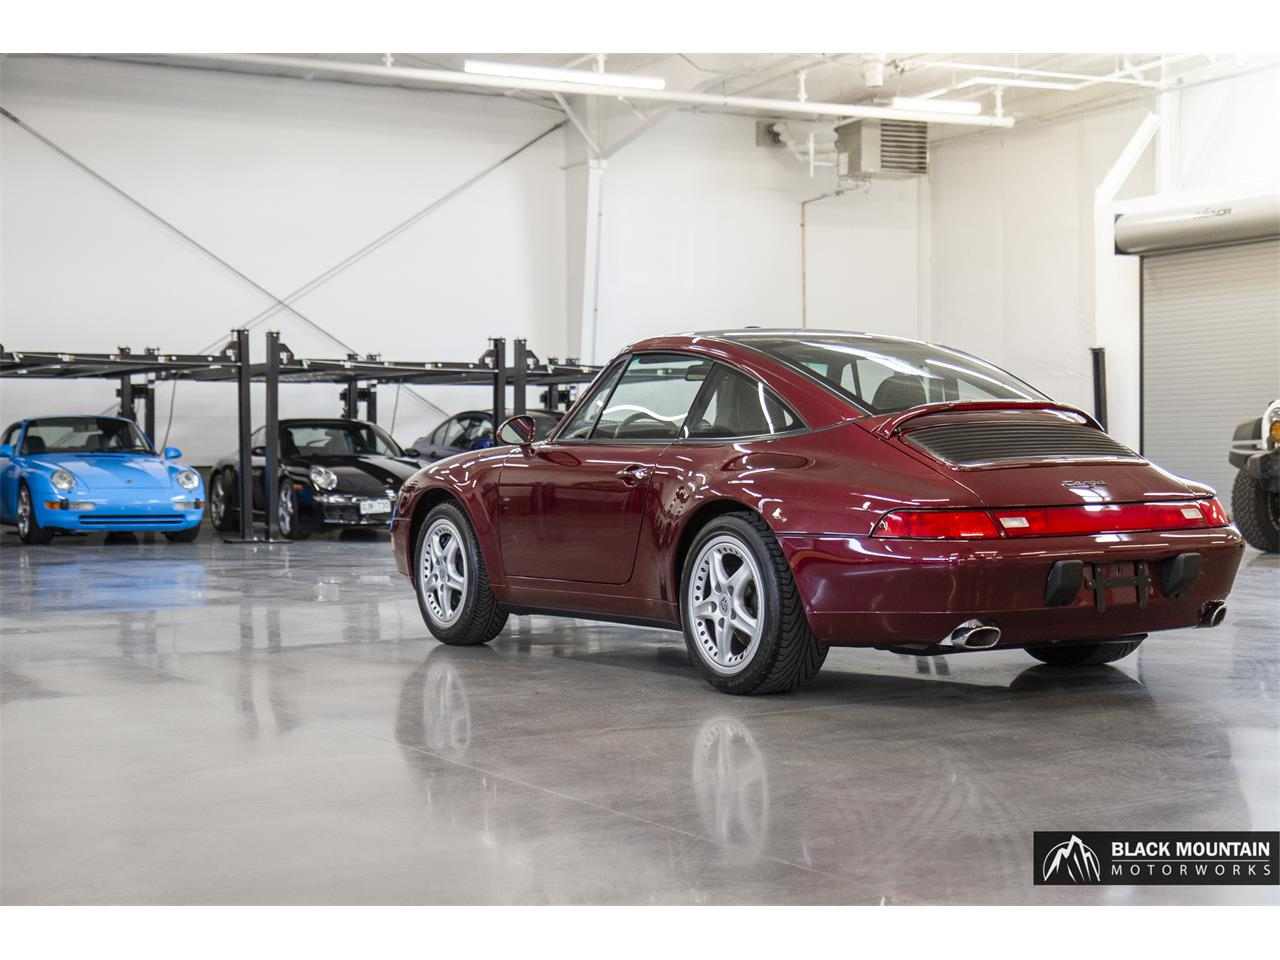 Large Picture of '97 Porsche 911 Carrera located in Colorado - $69,000.00 Offered by a Private Seller - QN1Z